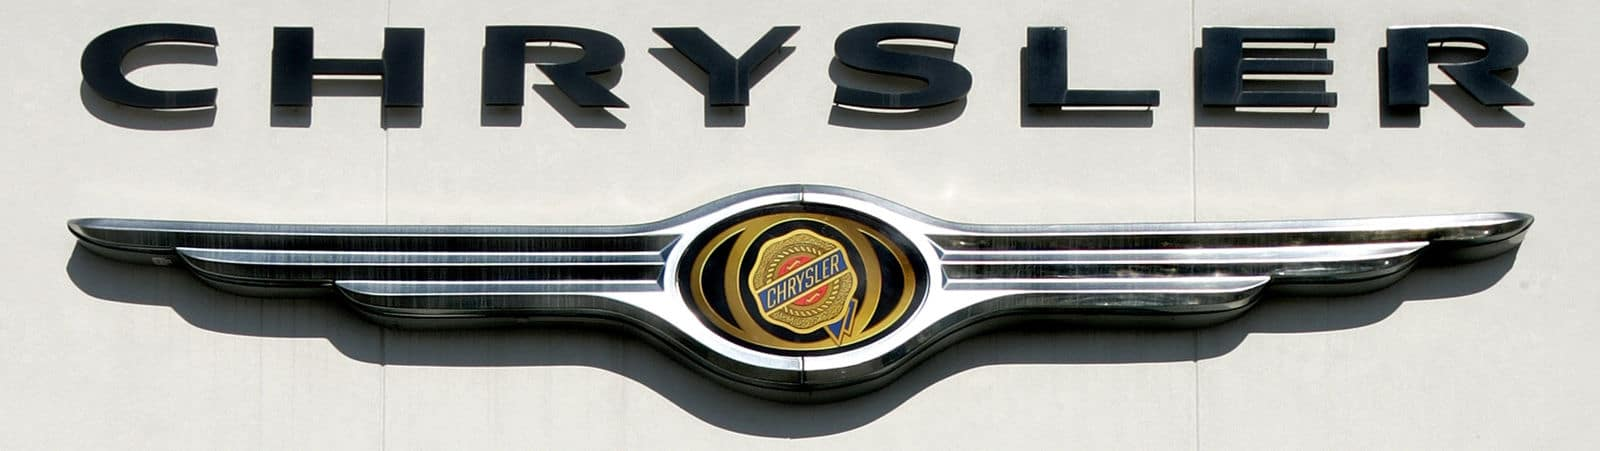 On the other side of the list, Chrysler was the fifth worst performing brand. File. (AP Photo/Douglas C. Pizac, File)